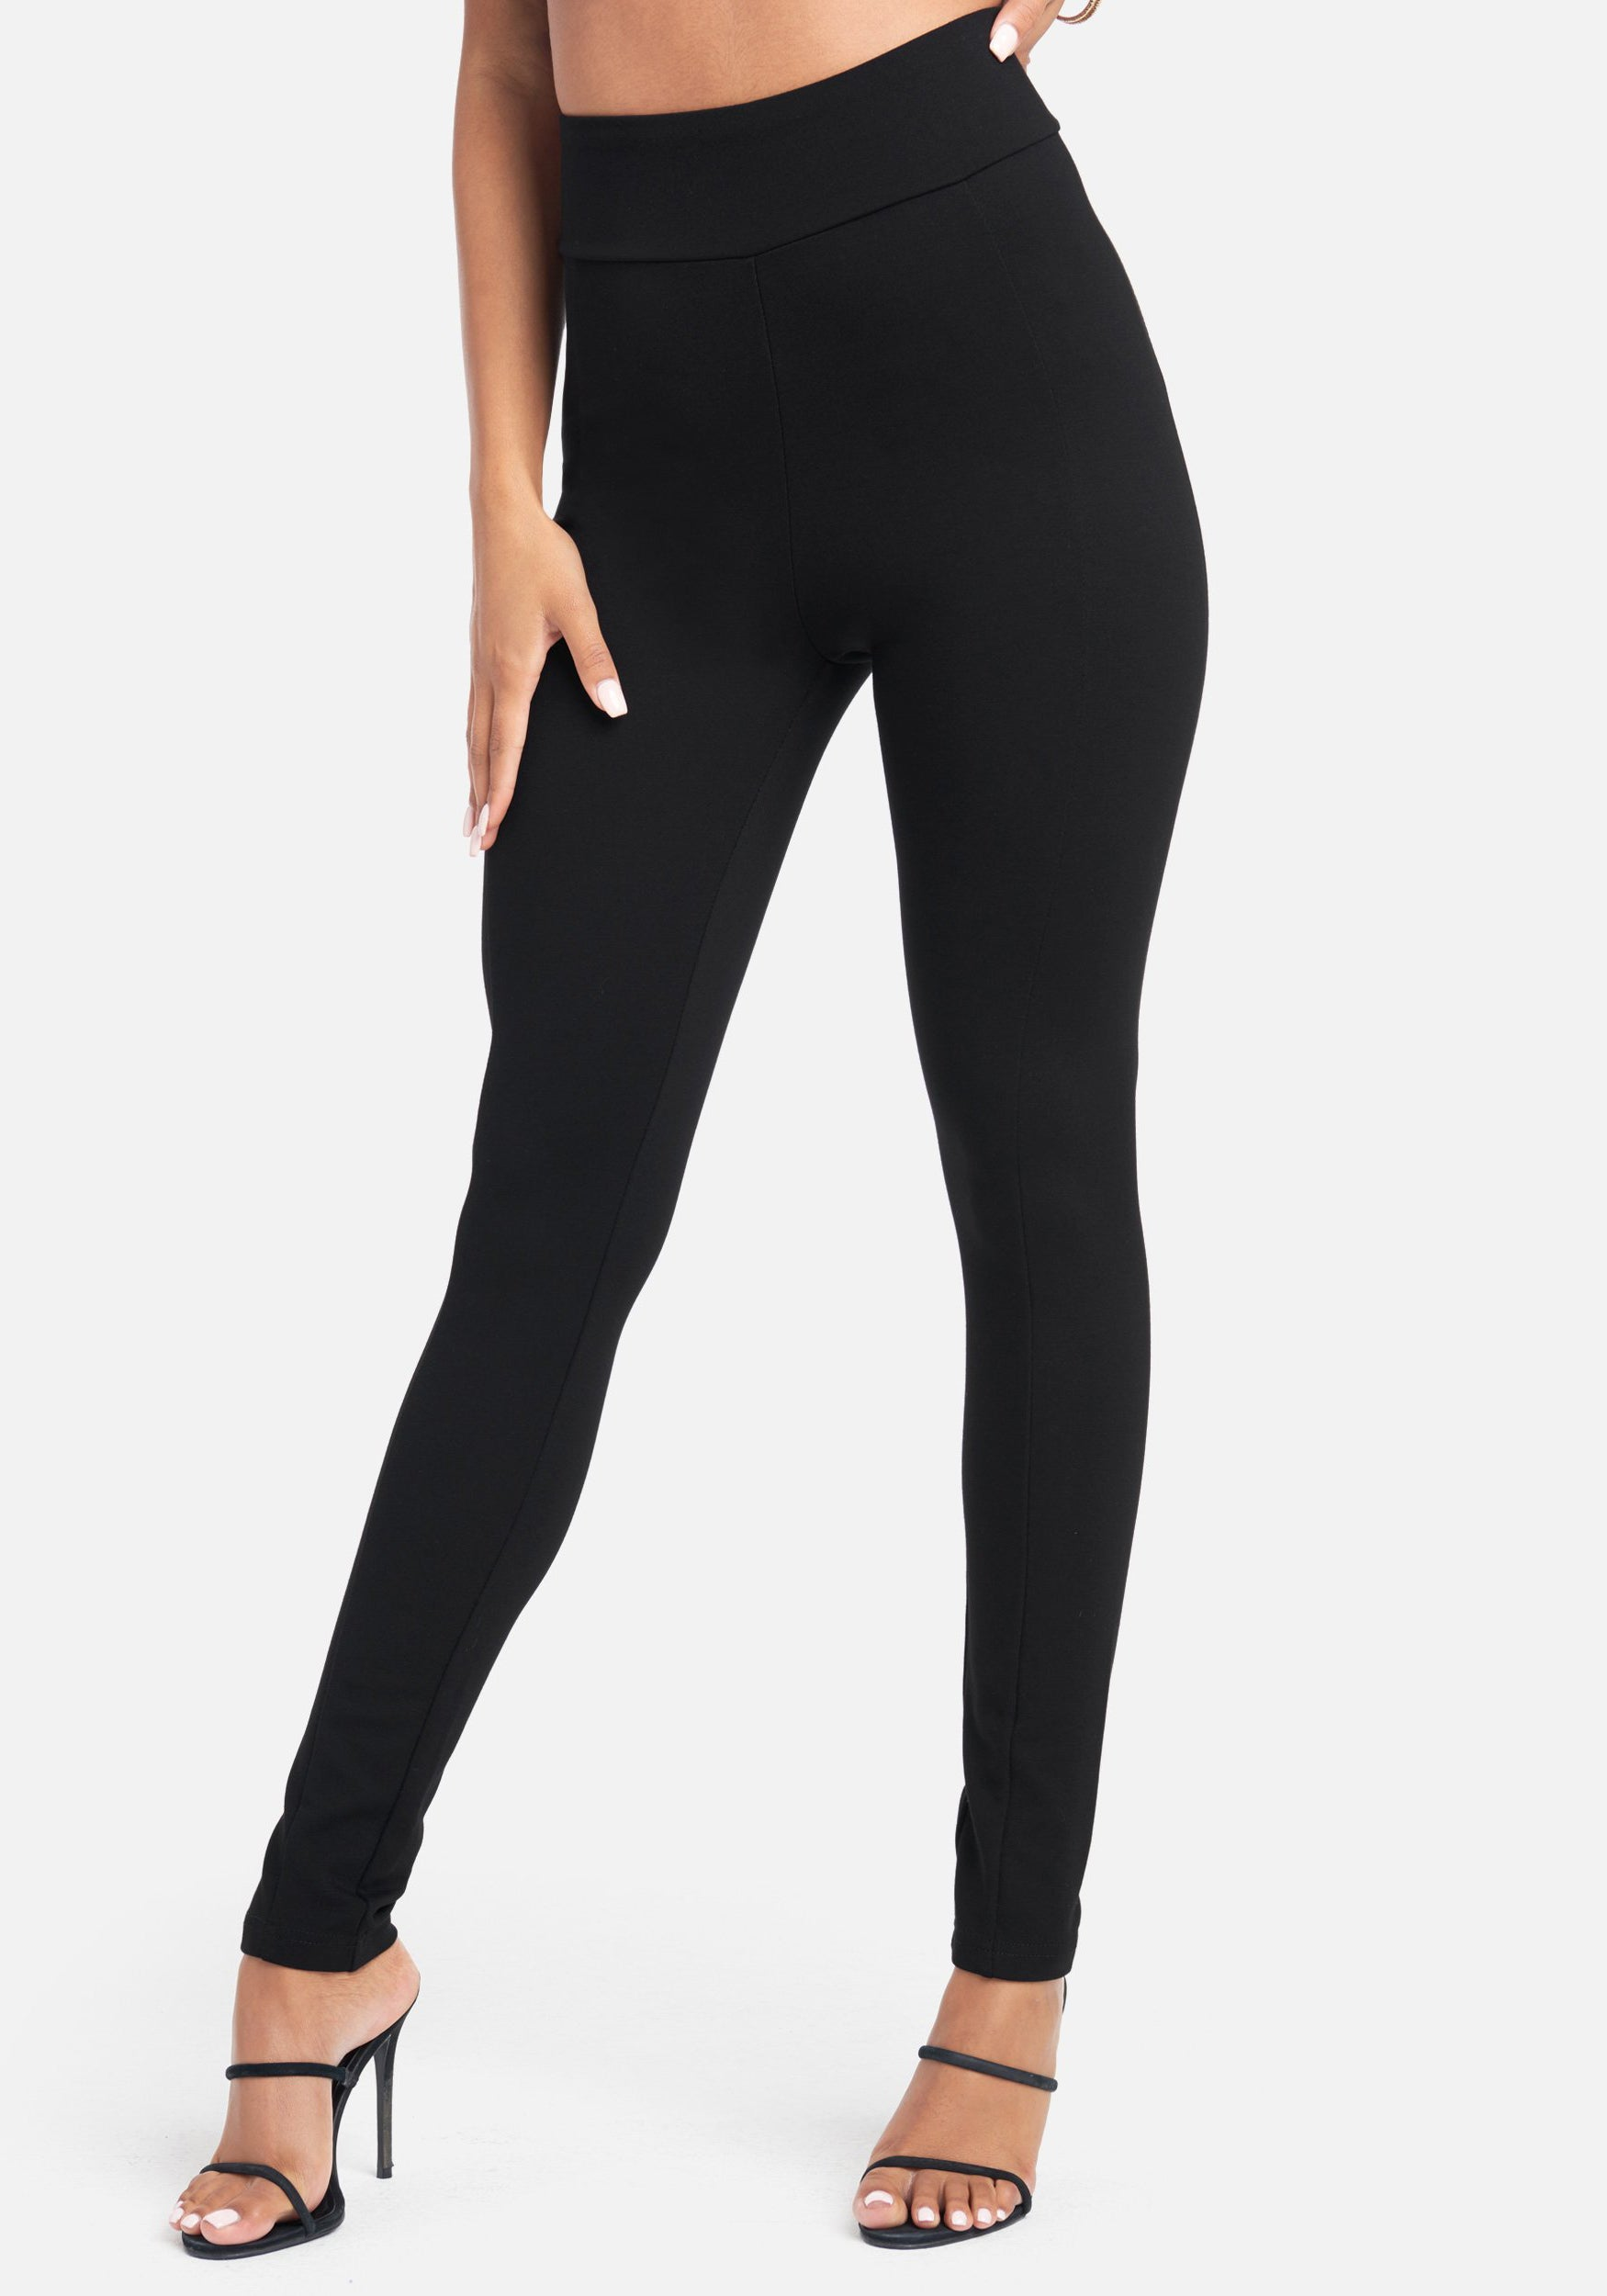 Bebe Women's Basic Pull Up Legging, Size XXS in Black Spandex/Nylon